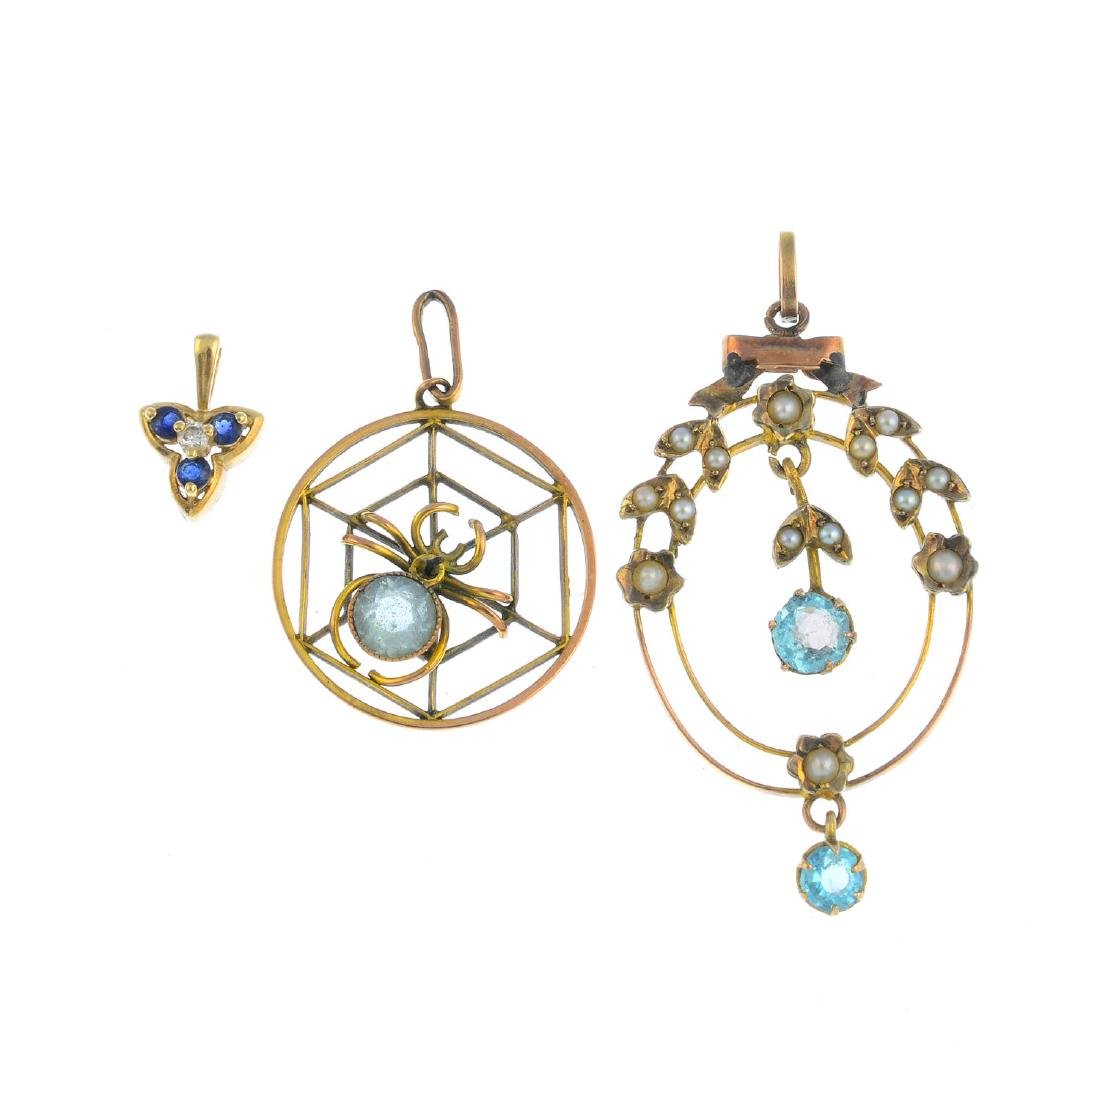 Three gem-set pendant. To include an early 20th century